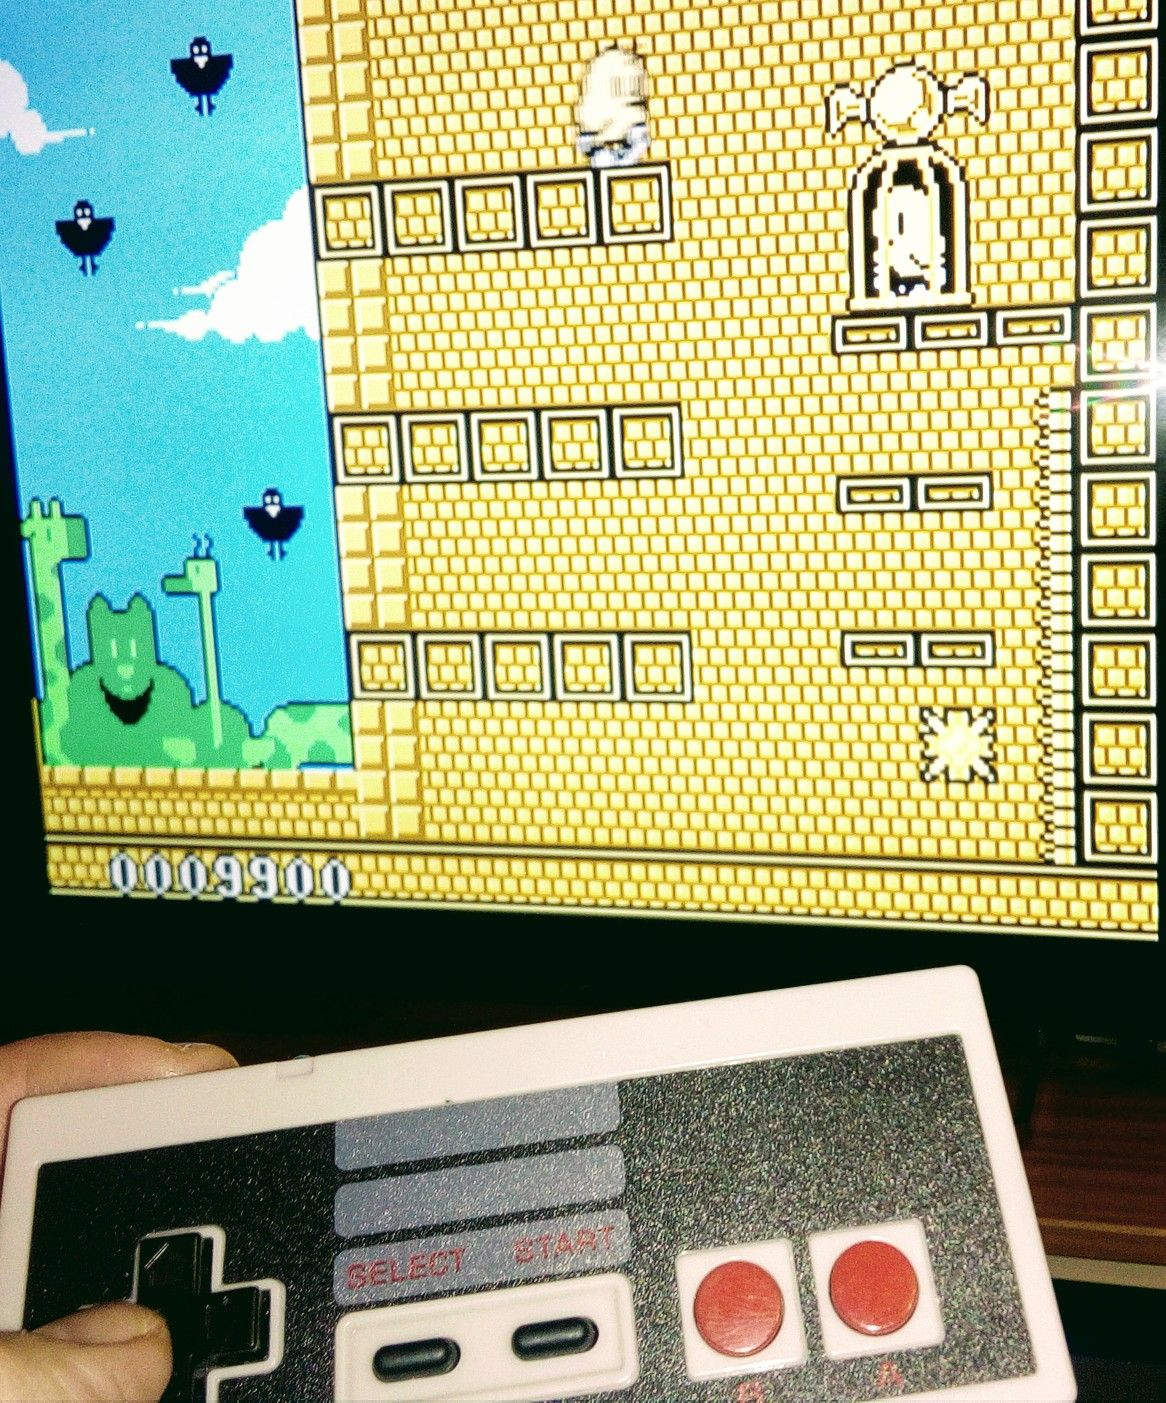 Android NES emulator on my TV  Playing with NES USB controller